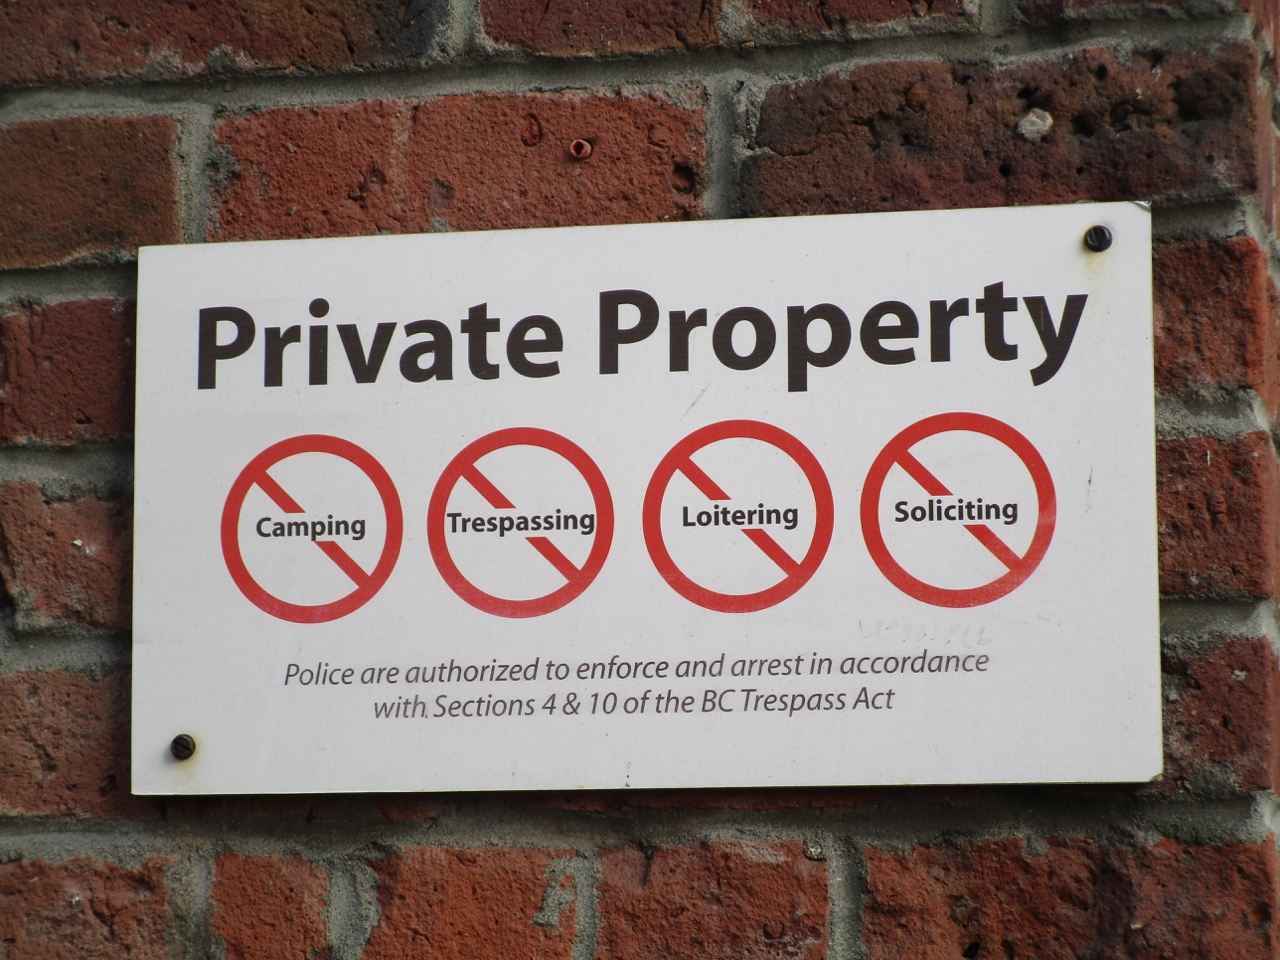 """""""Private Property. No camping, trespassing, loitering, or soliciting. Police are authorized to enforce and arrest in accordance with Sections 4 & 10 of the BC Trespass Act."""""""